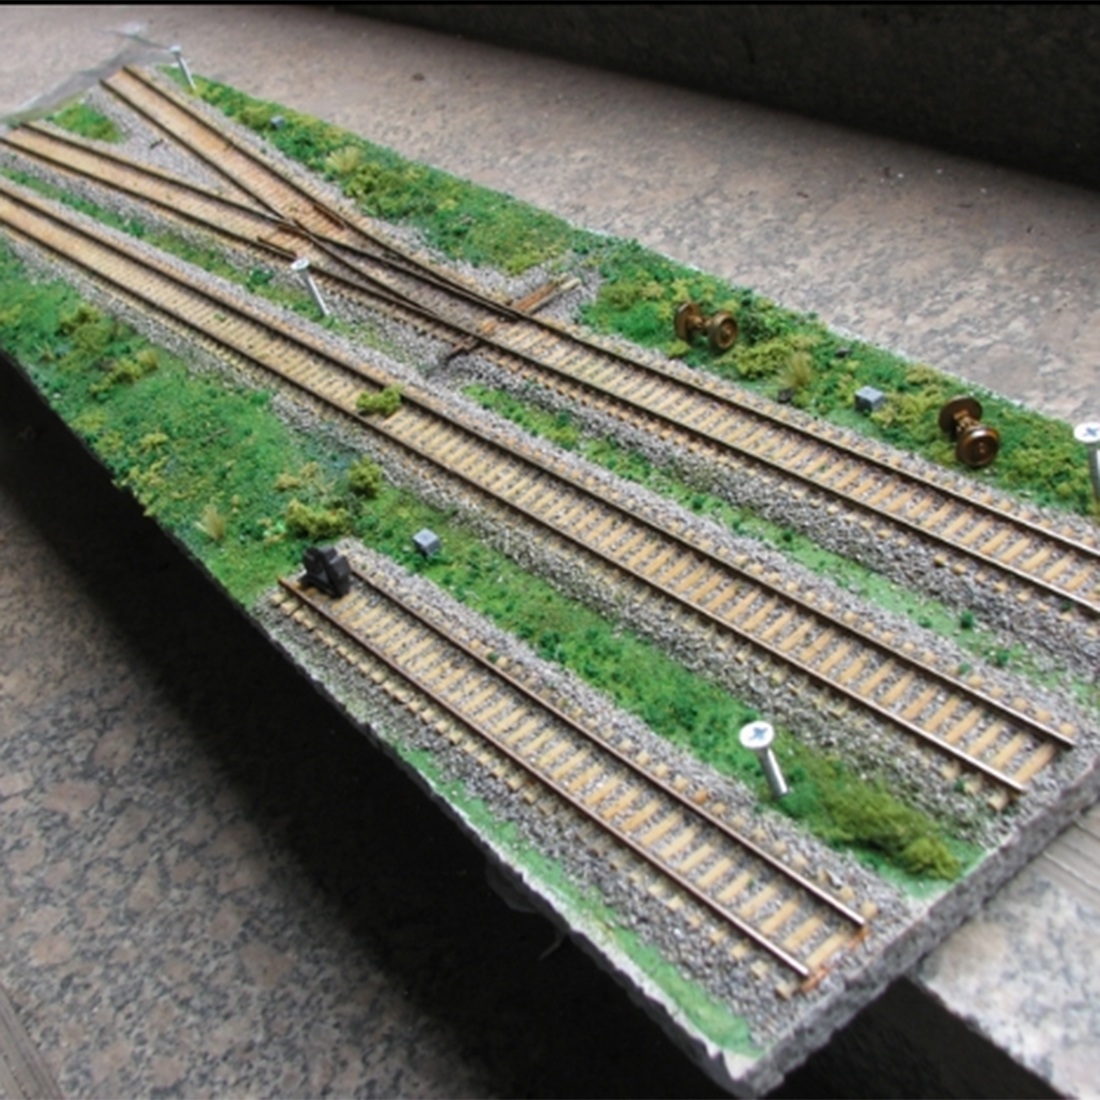 1:87 HO Scale Micro Train Construction Scene Sand Table Display Stand Model